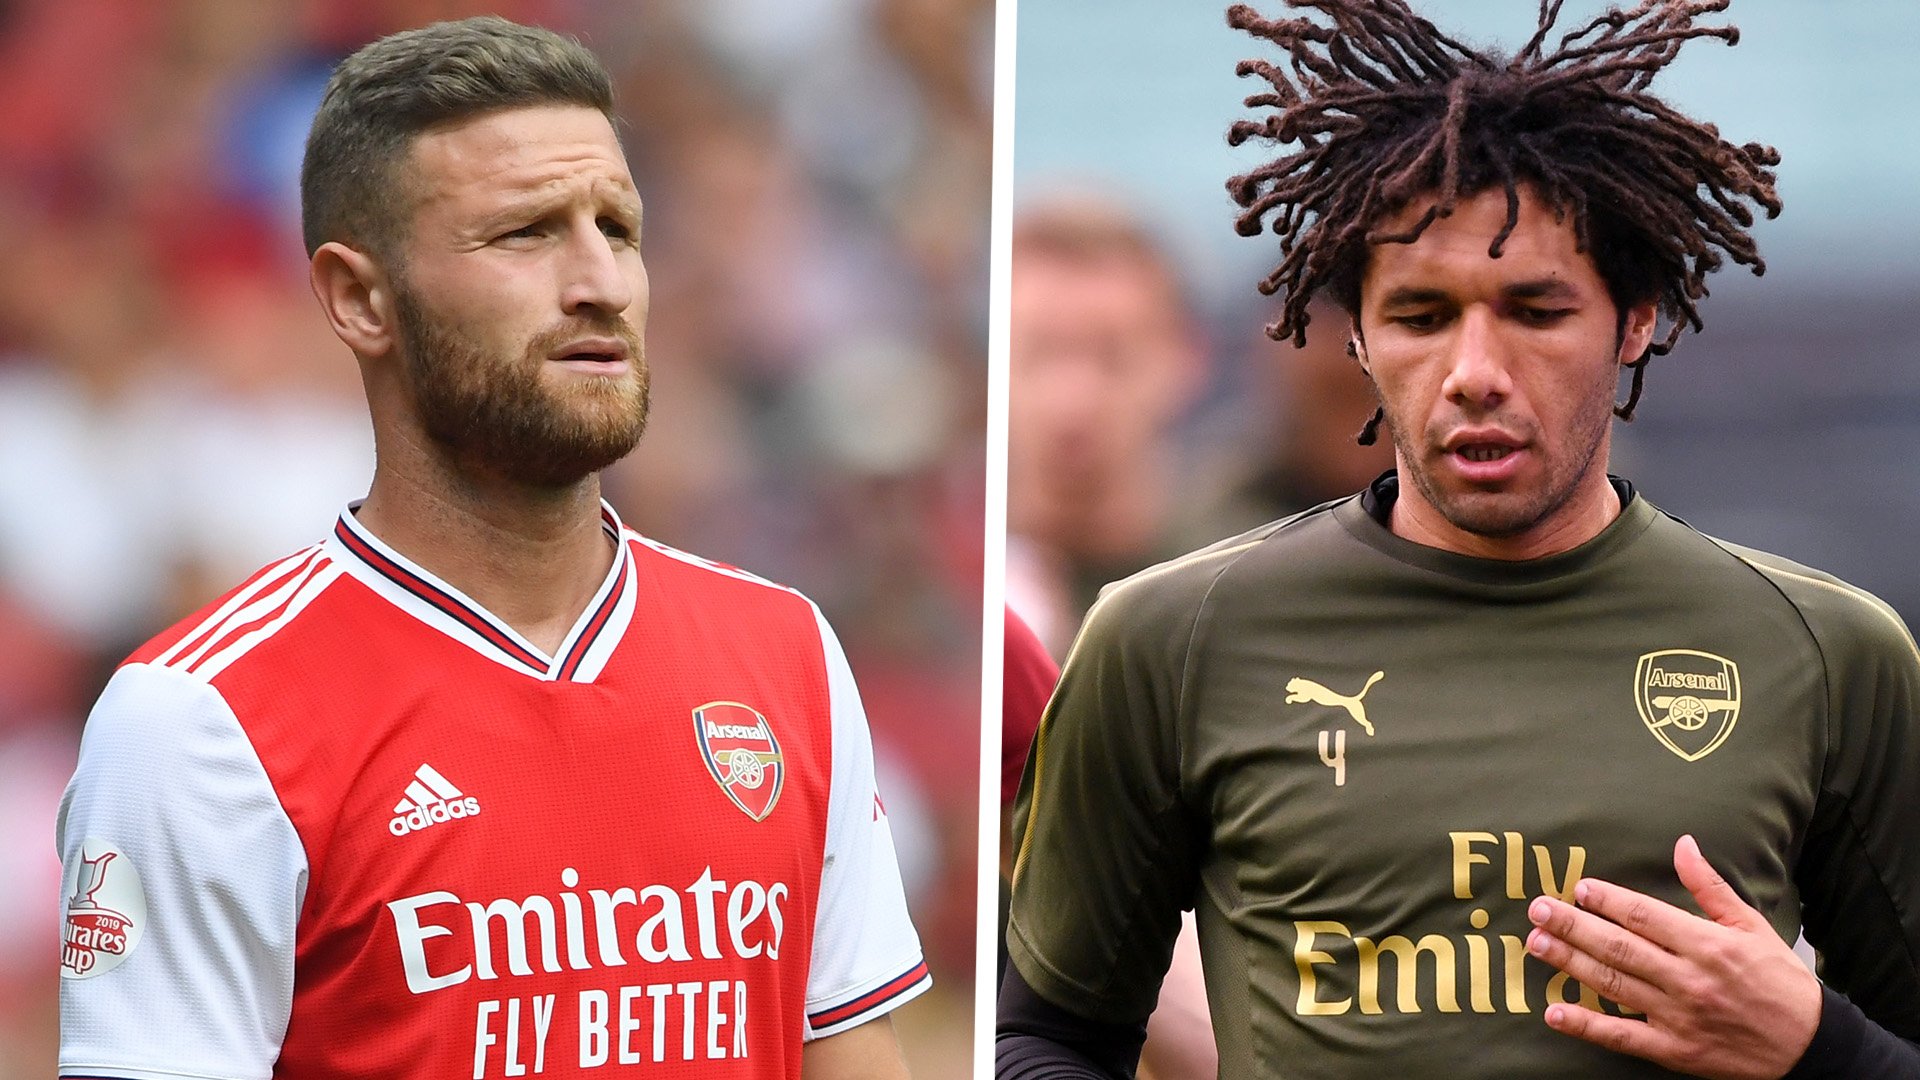 Unai Emery brutally tells Shkodran Mustafi to leave Arsenal